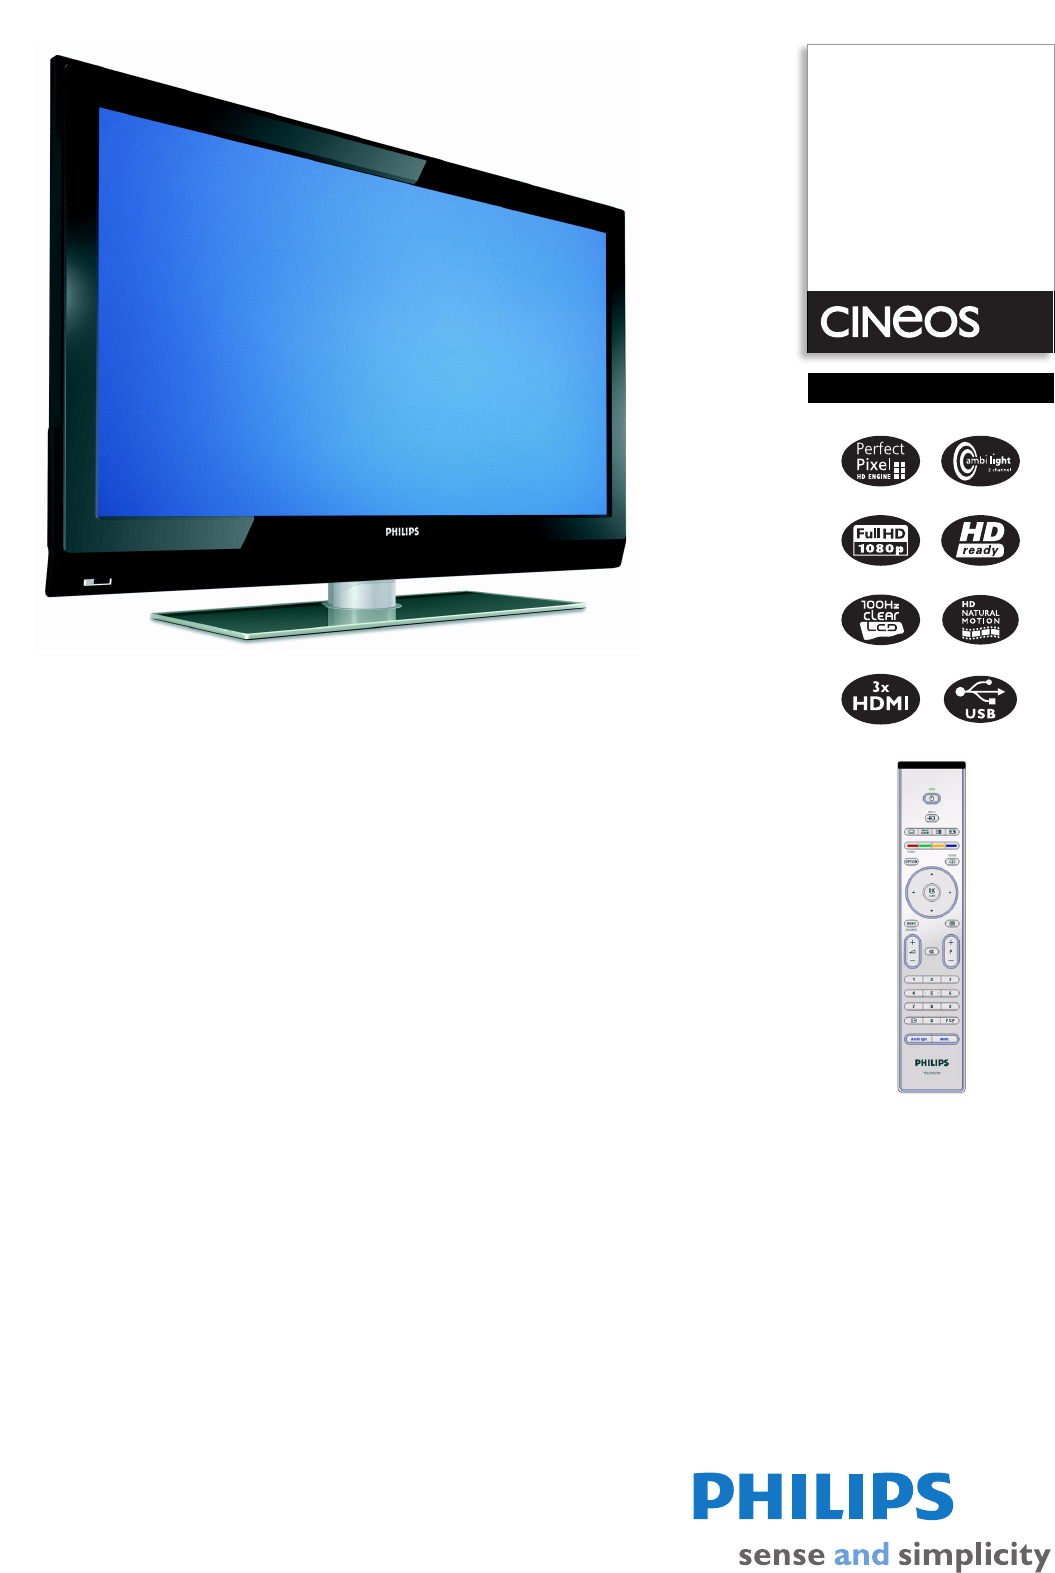 philips flat panel television 42pfl9532 user guide manualsonline com Philips 22 Flat Screen TV manual de instruções tv philips 42 lcd